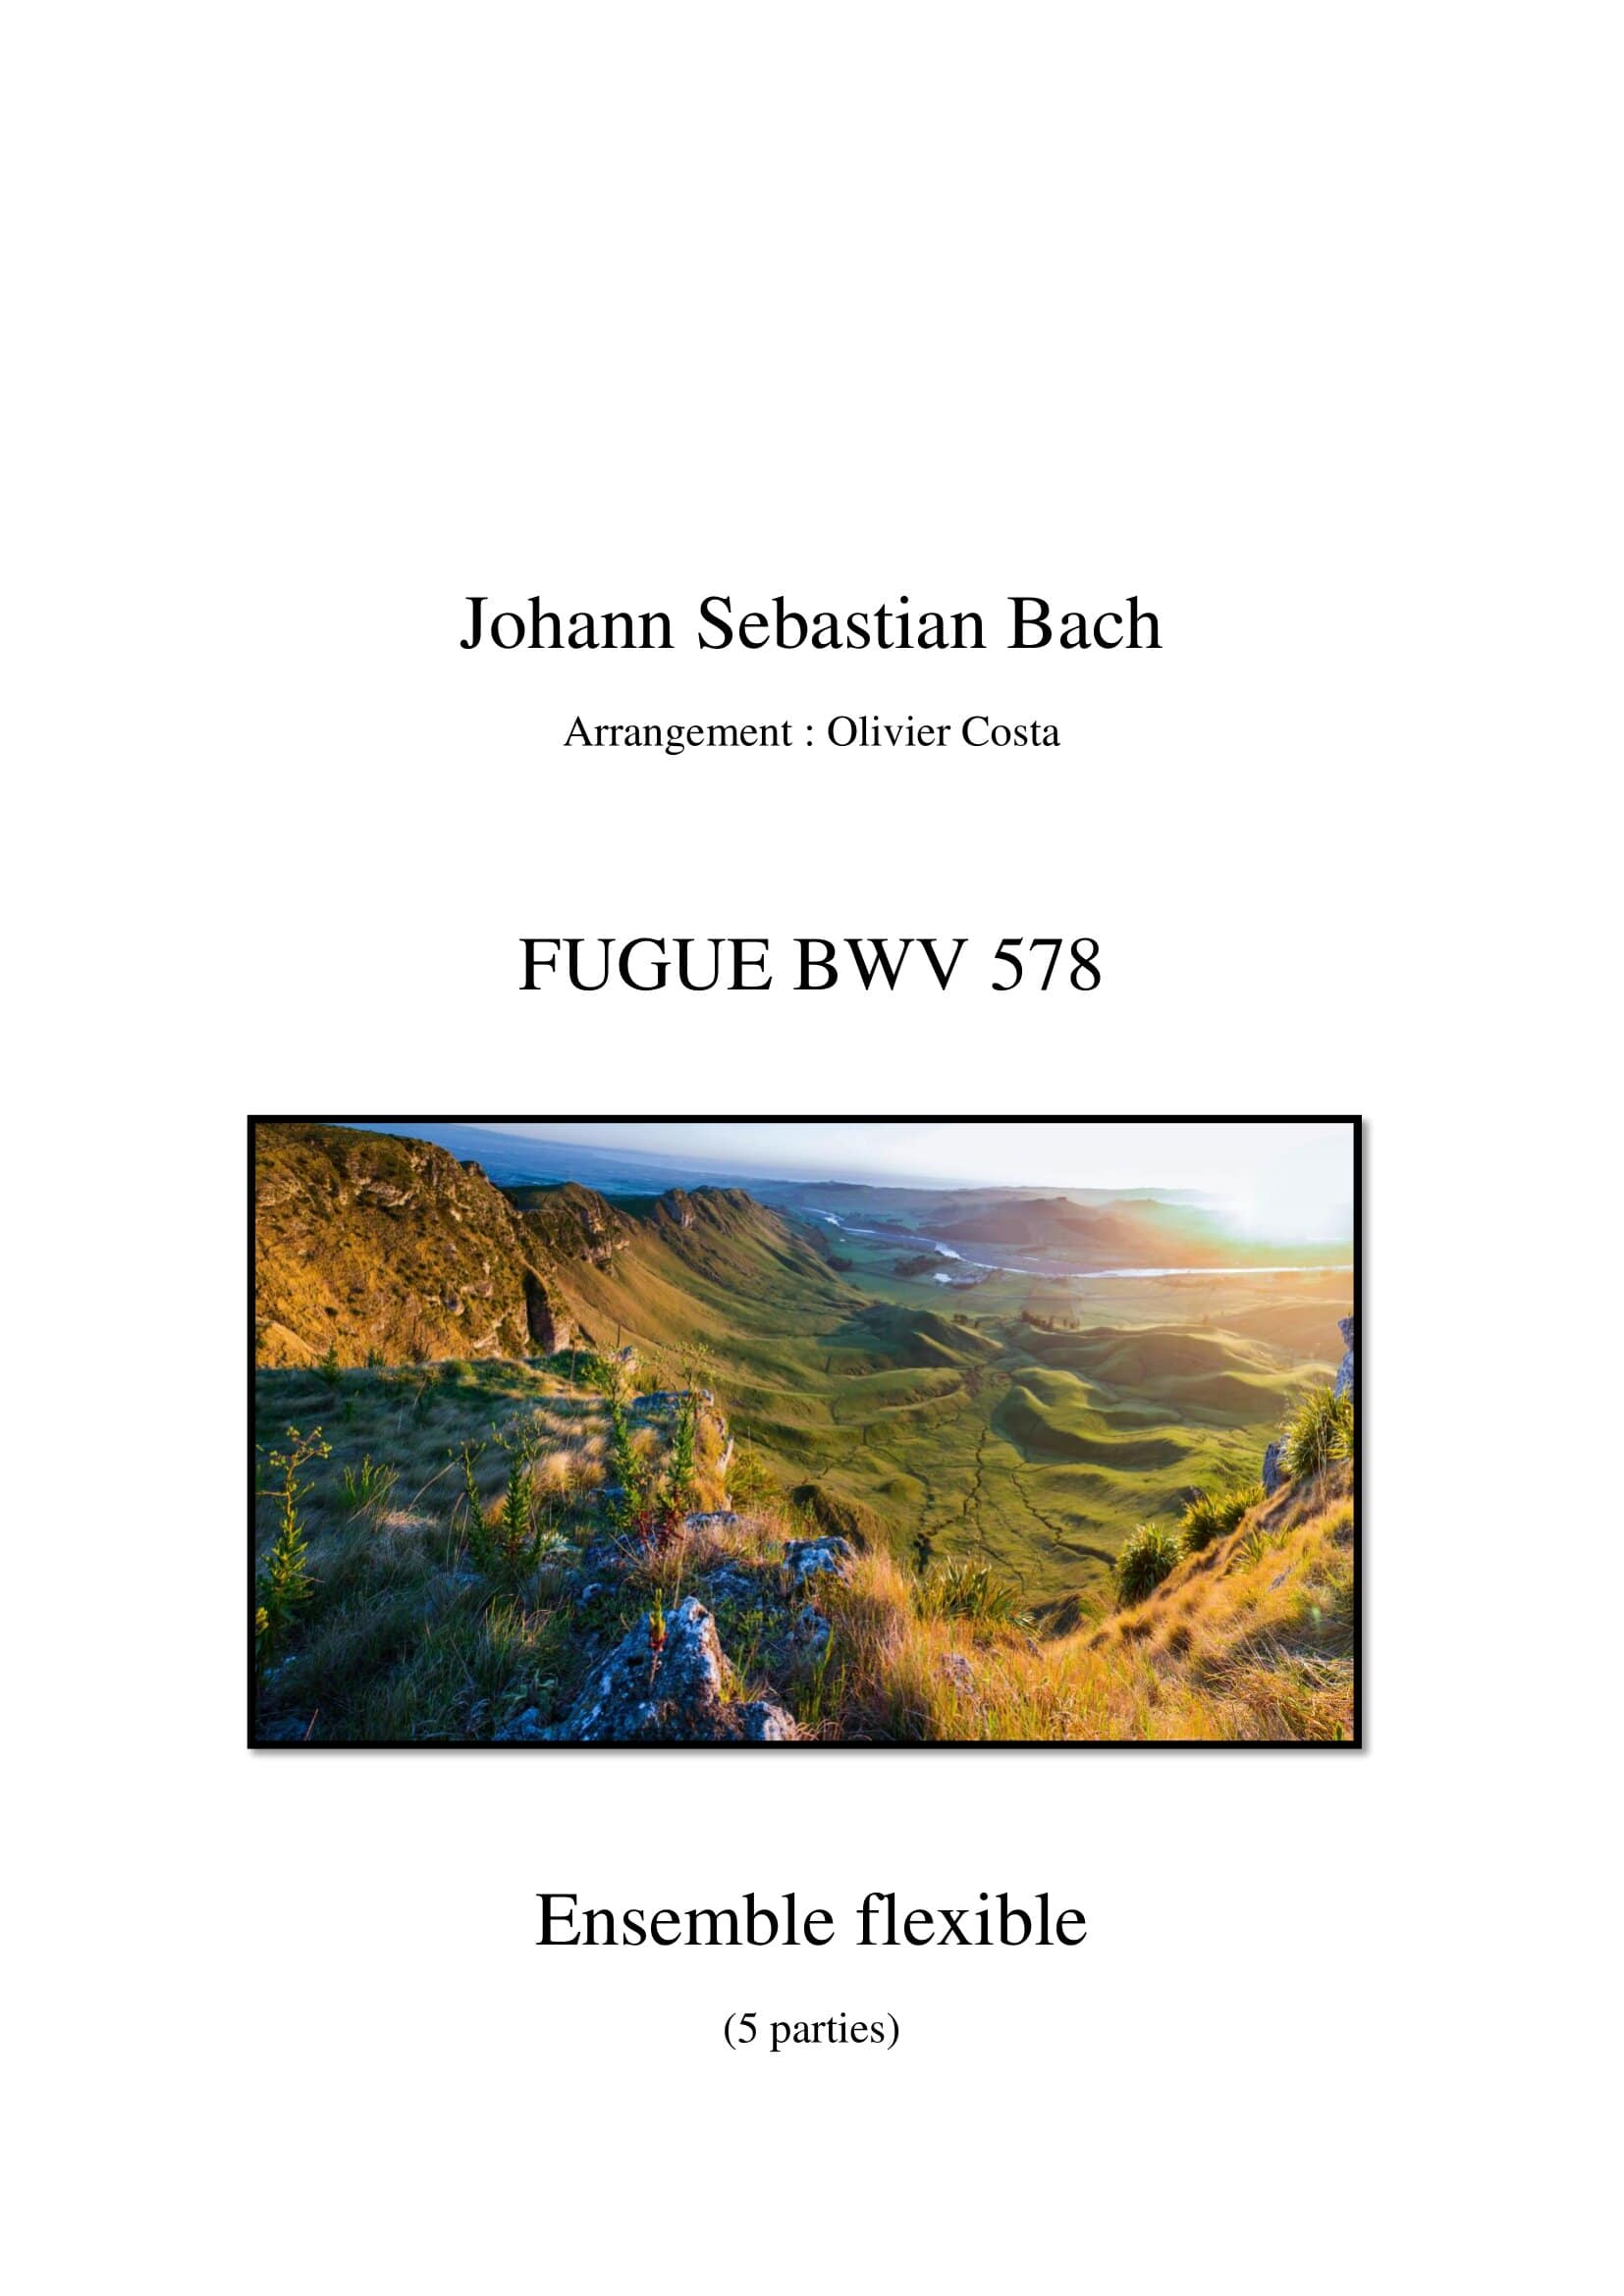 Fugue bwv 578 - Orchestration flexible